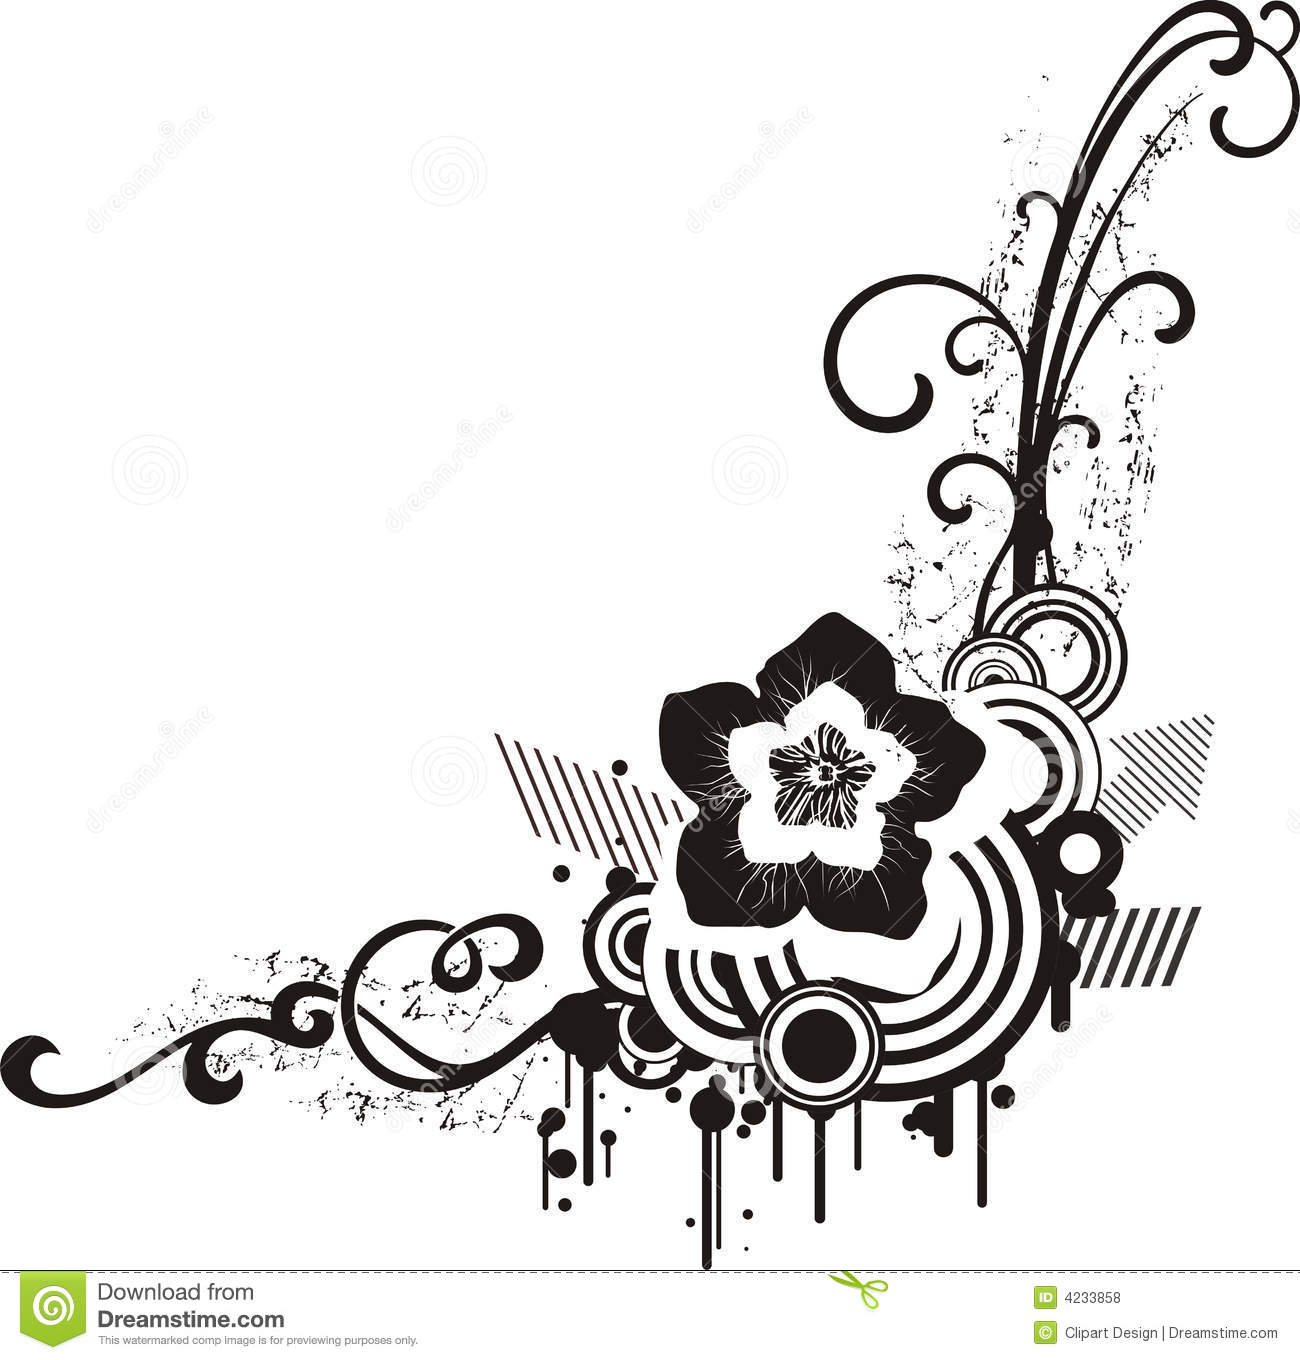 Black U0026 White Floral Designs Stock Vector   Illustration Of Decorative,  Ornate: 4233858